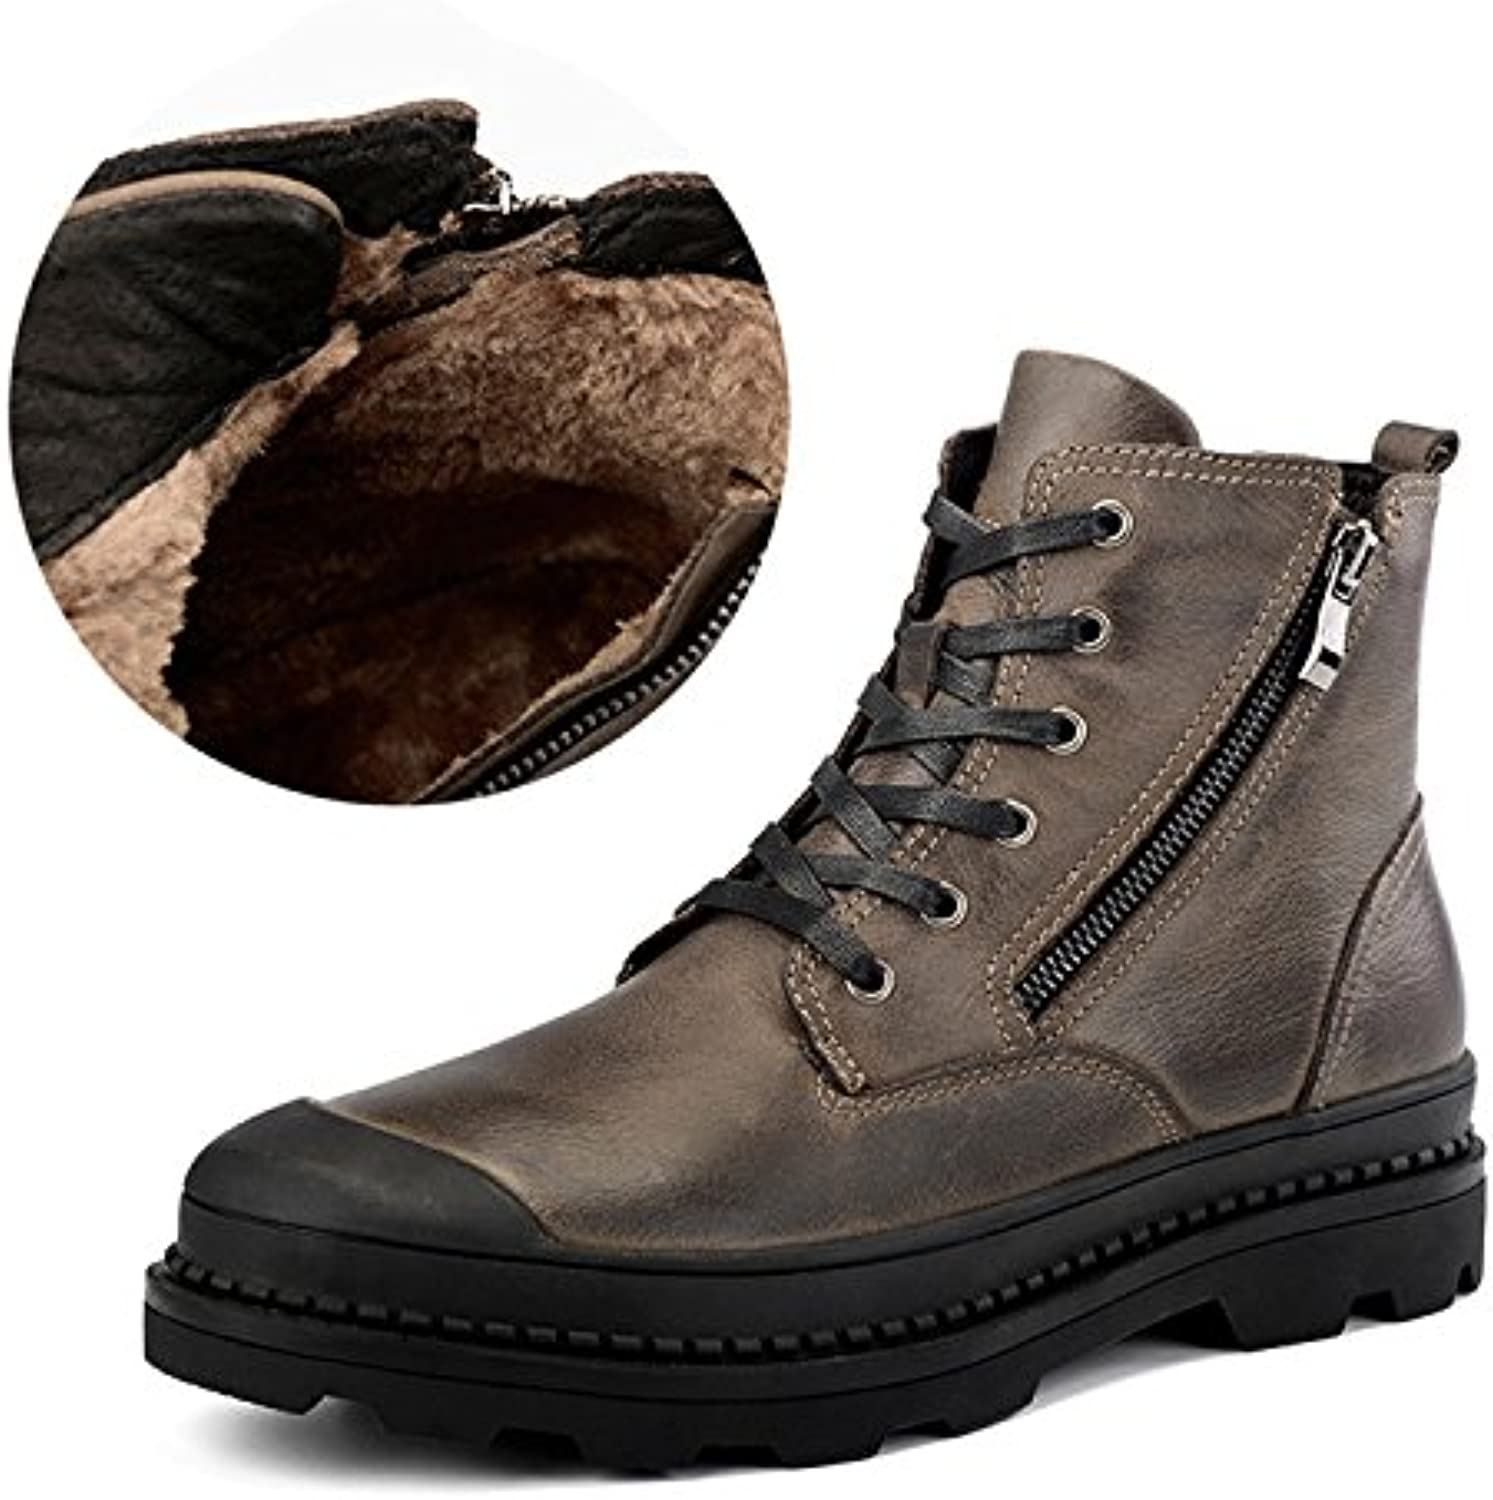 Genuine Leather Ankle Boots For Male Botas Plush Men Boots Warm Winter Shoes